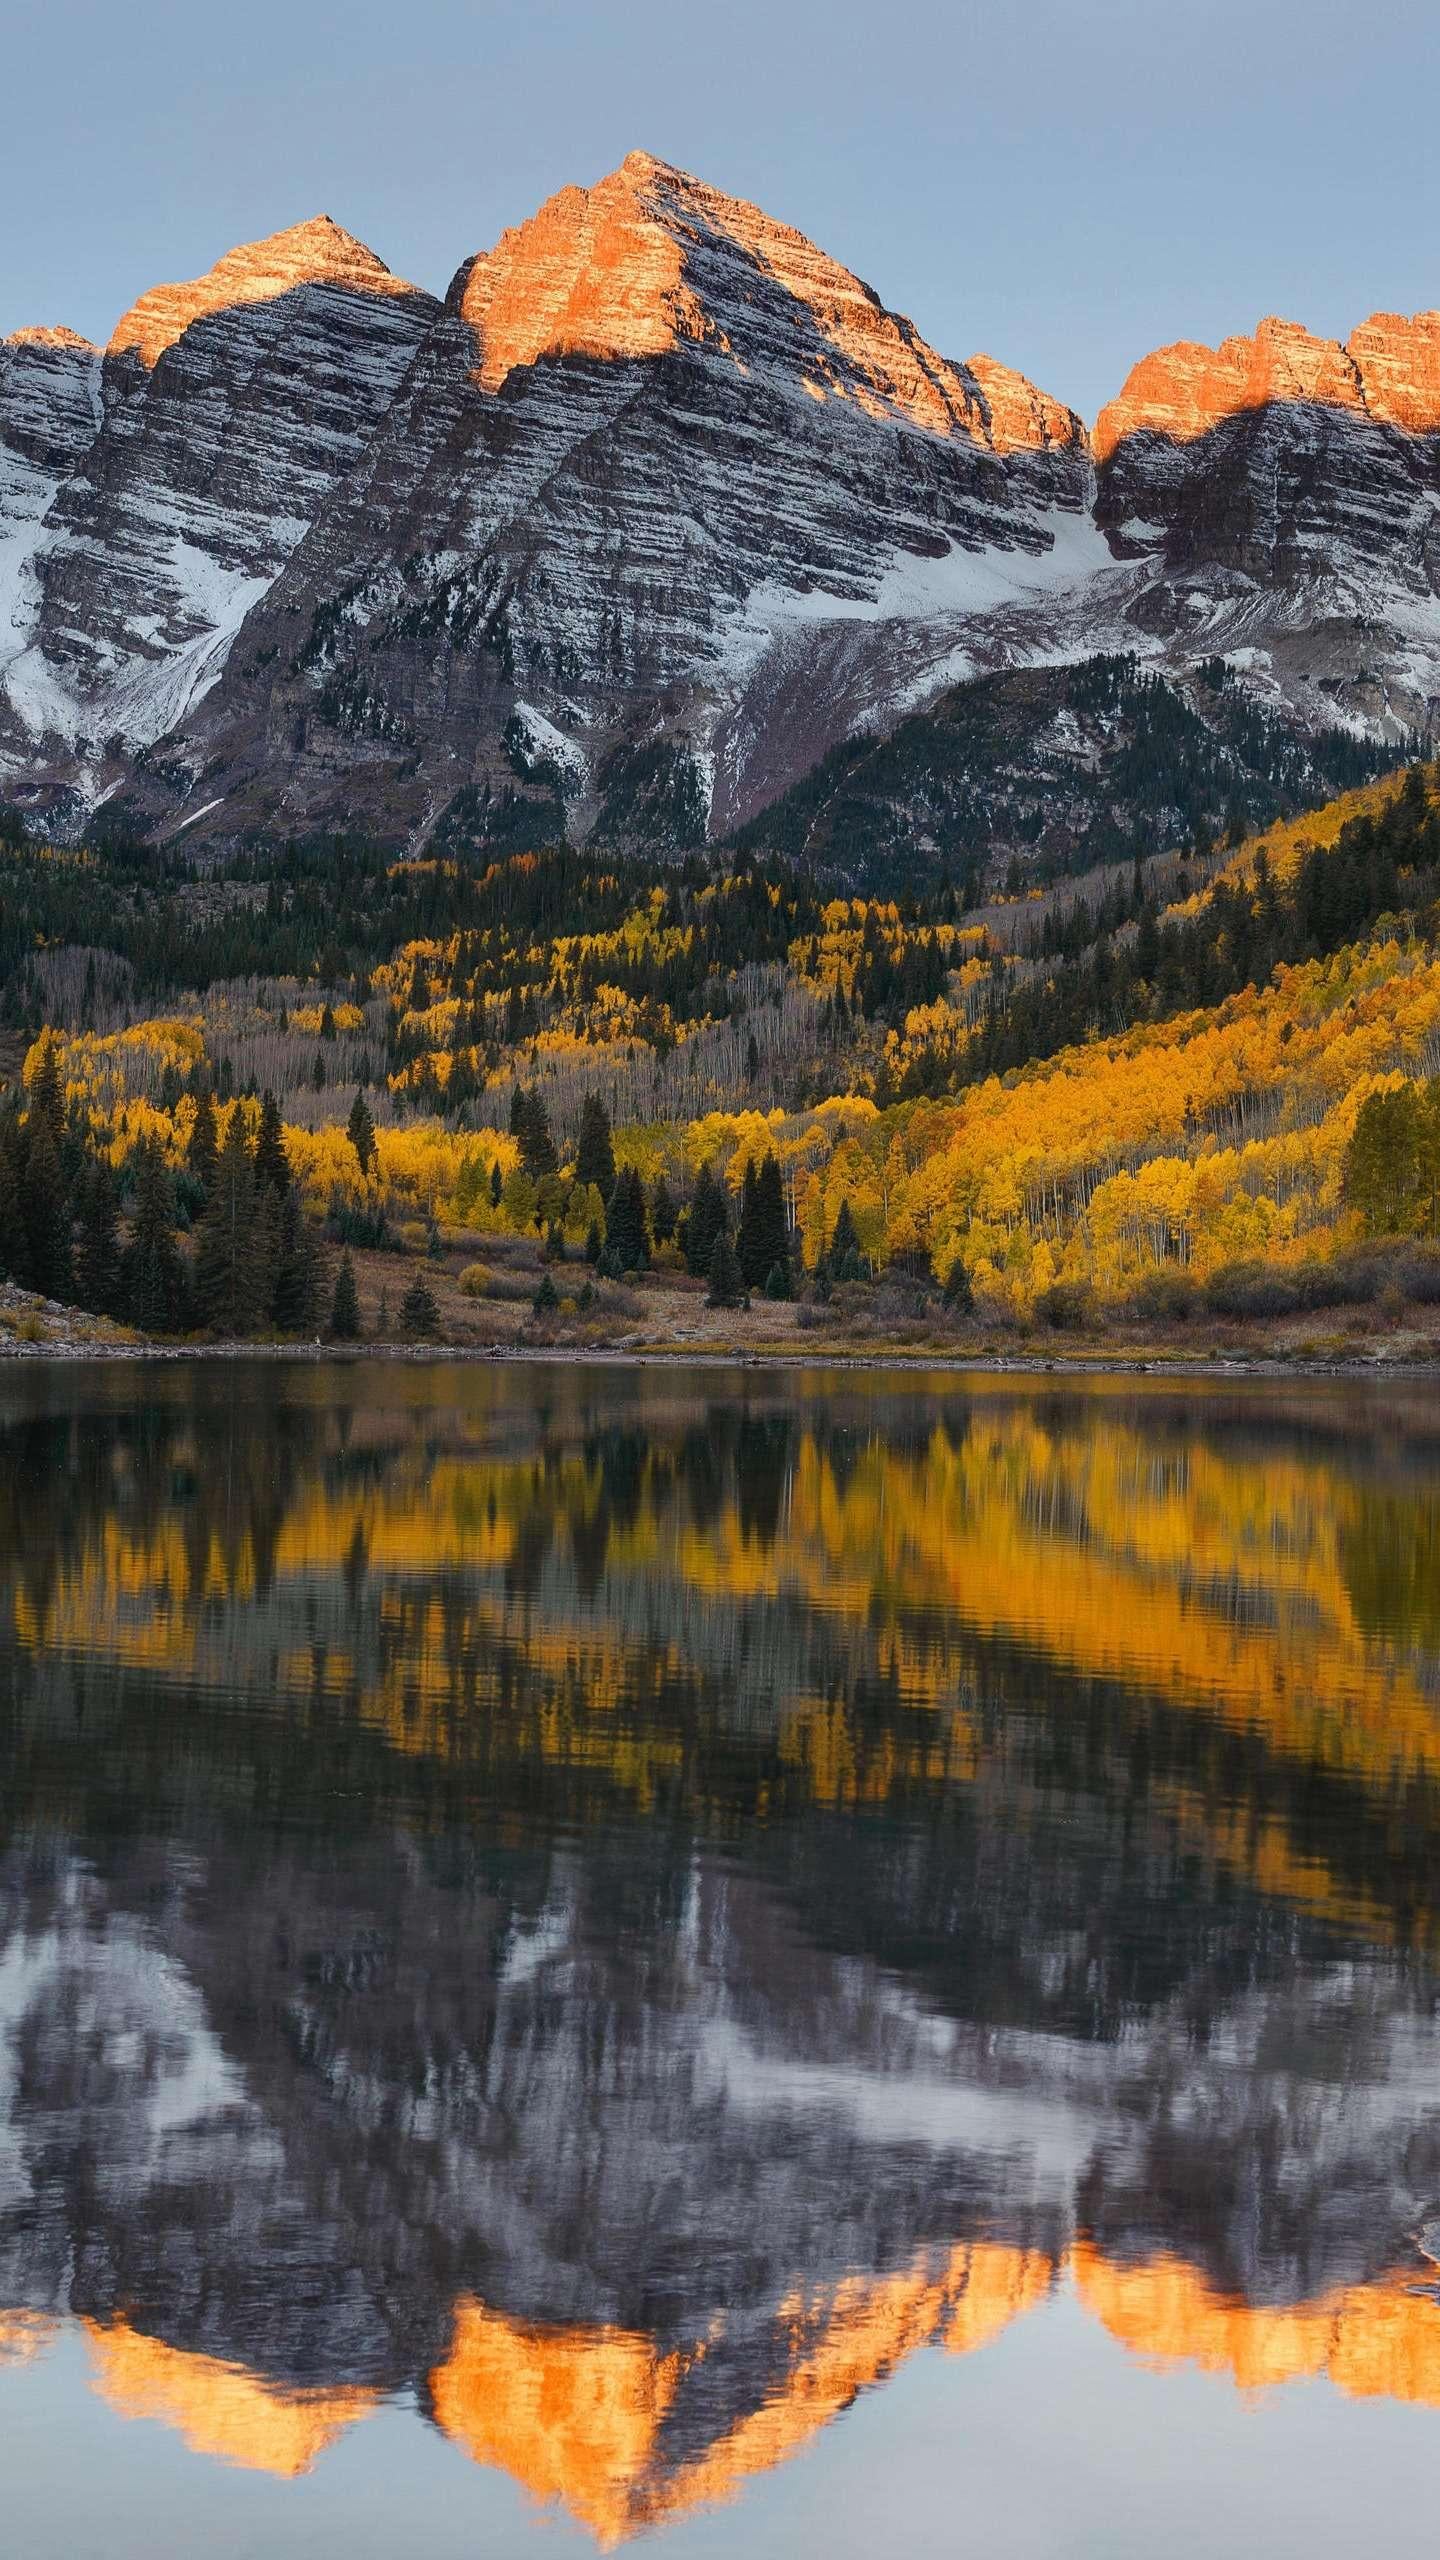 Colorado, USA. At sunrise, when the sun dyed the peaks of the red-brown bells, there was a resurgence of rejuvenation.